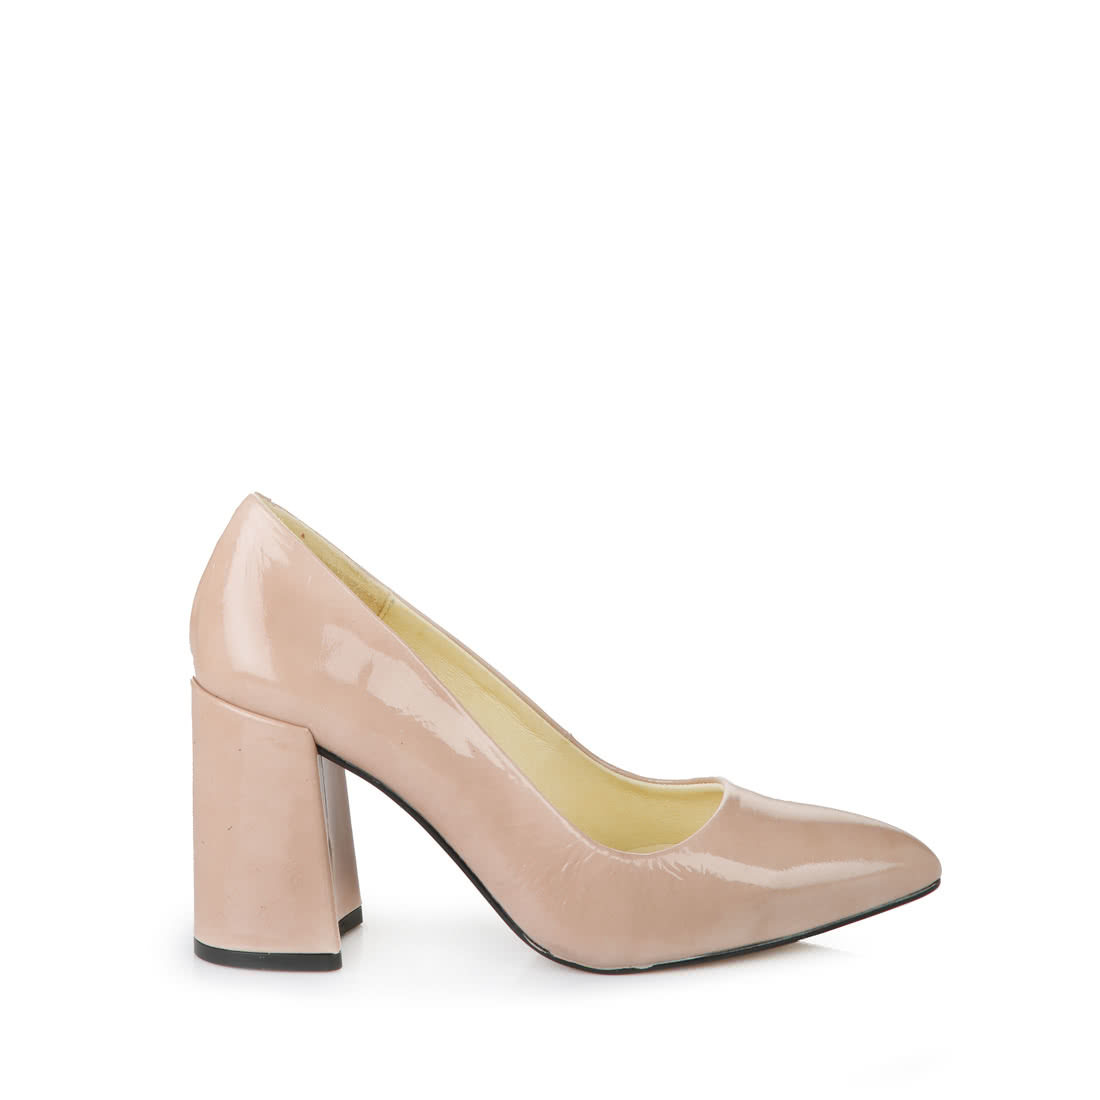 Buffalo Pumps mit Blockabsatz in nude online kaufen   BUFFALO® 07915160a8